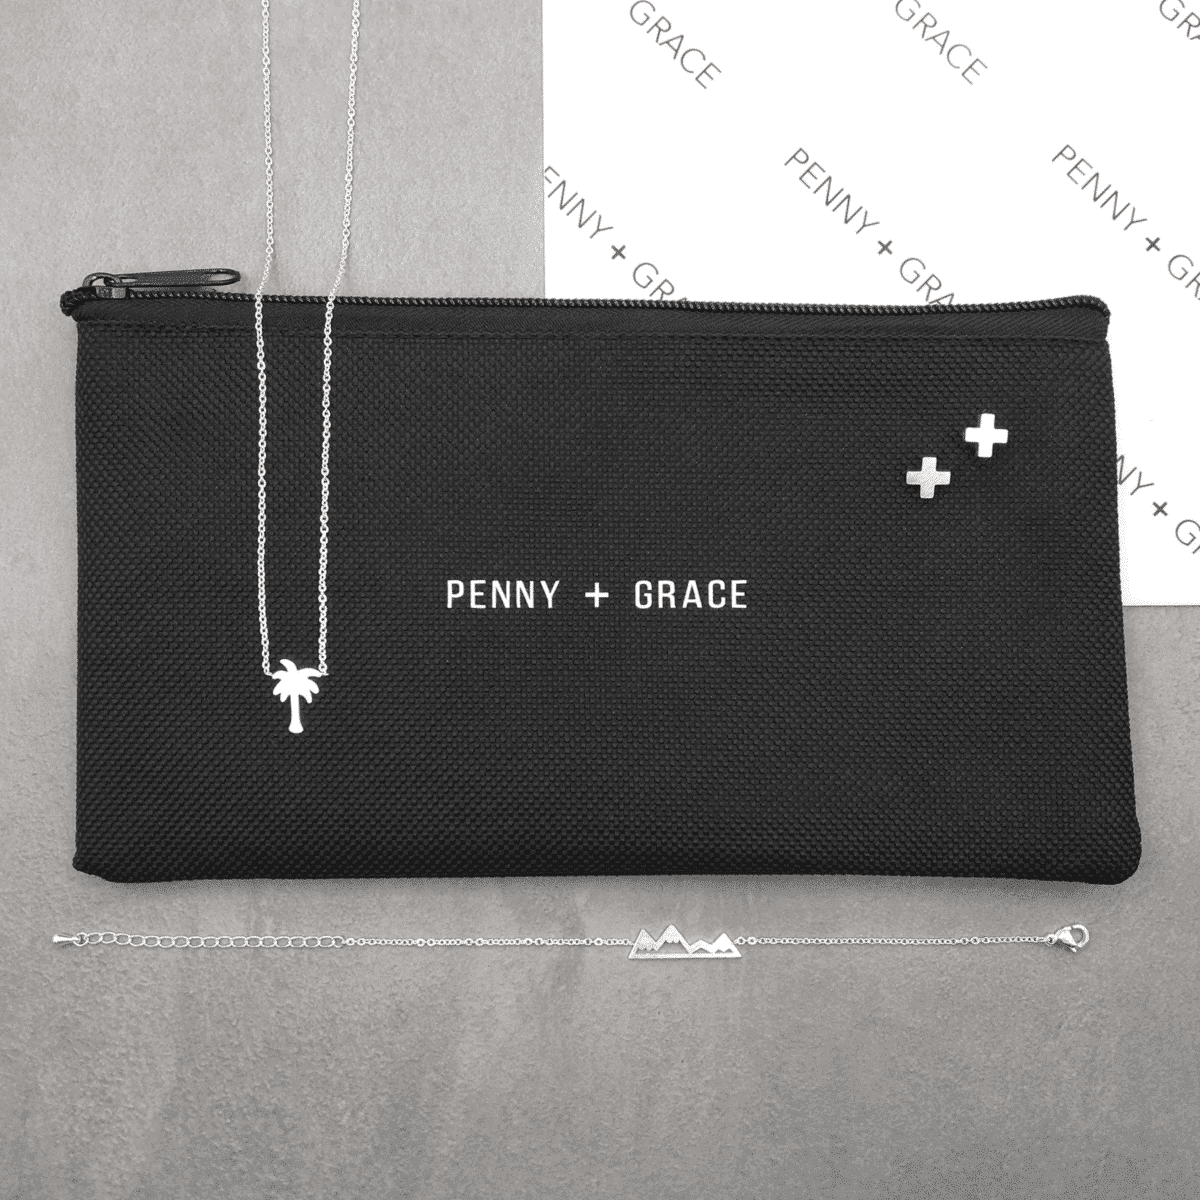 Penny + Grace Jewelry Subscription Box